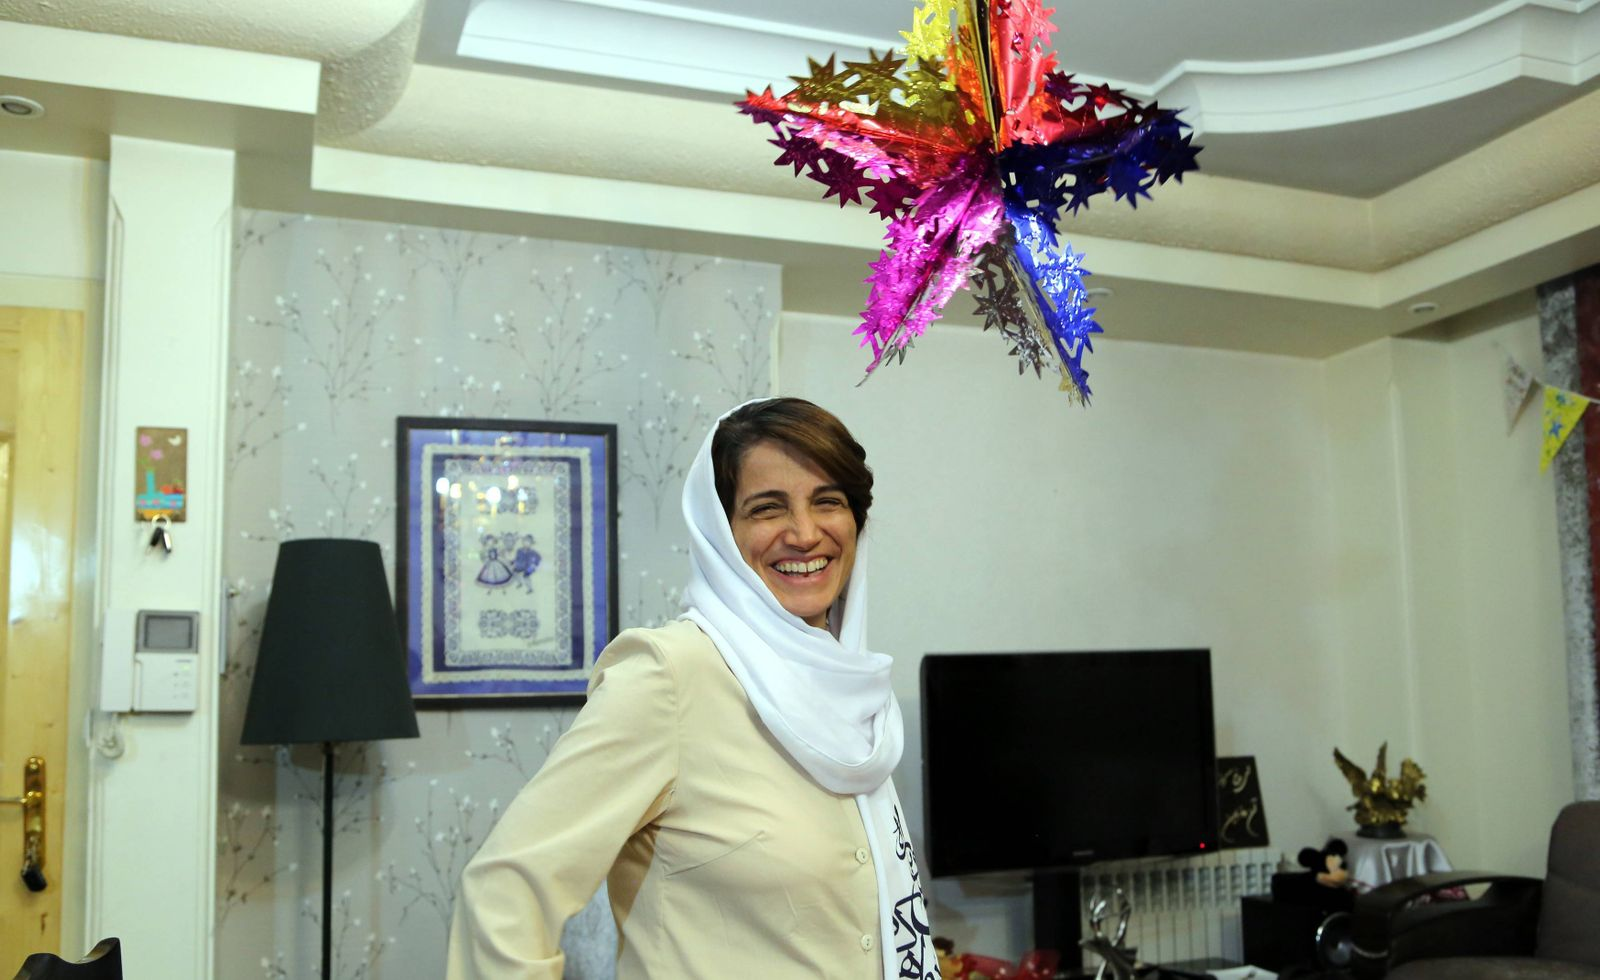 Human rights activist Nasrin Sotudeh is seen in her house in Tehran Iran on September 18 2013 I